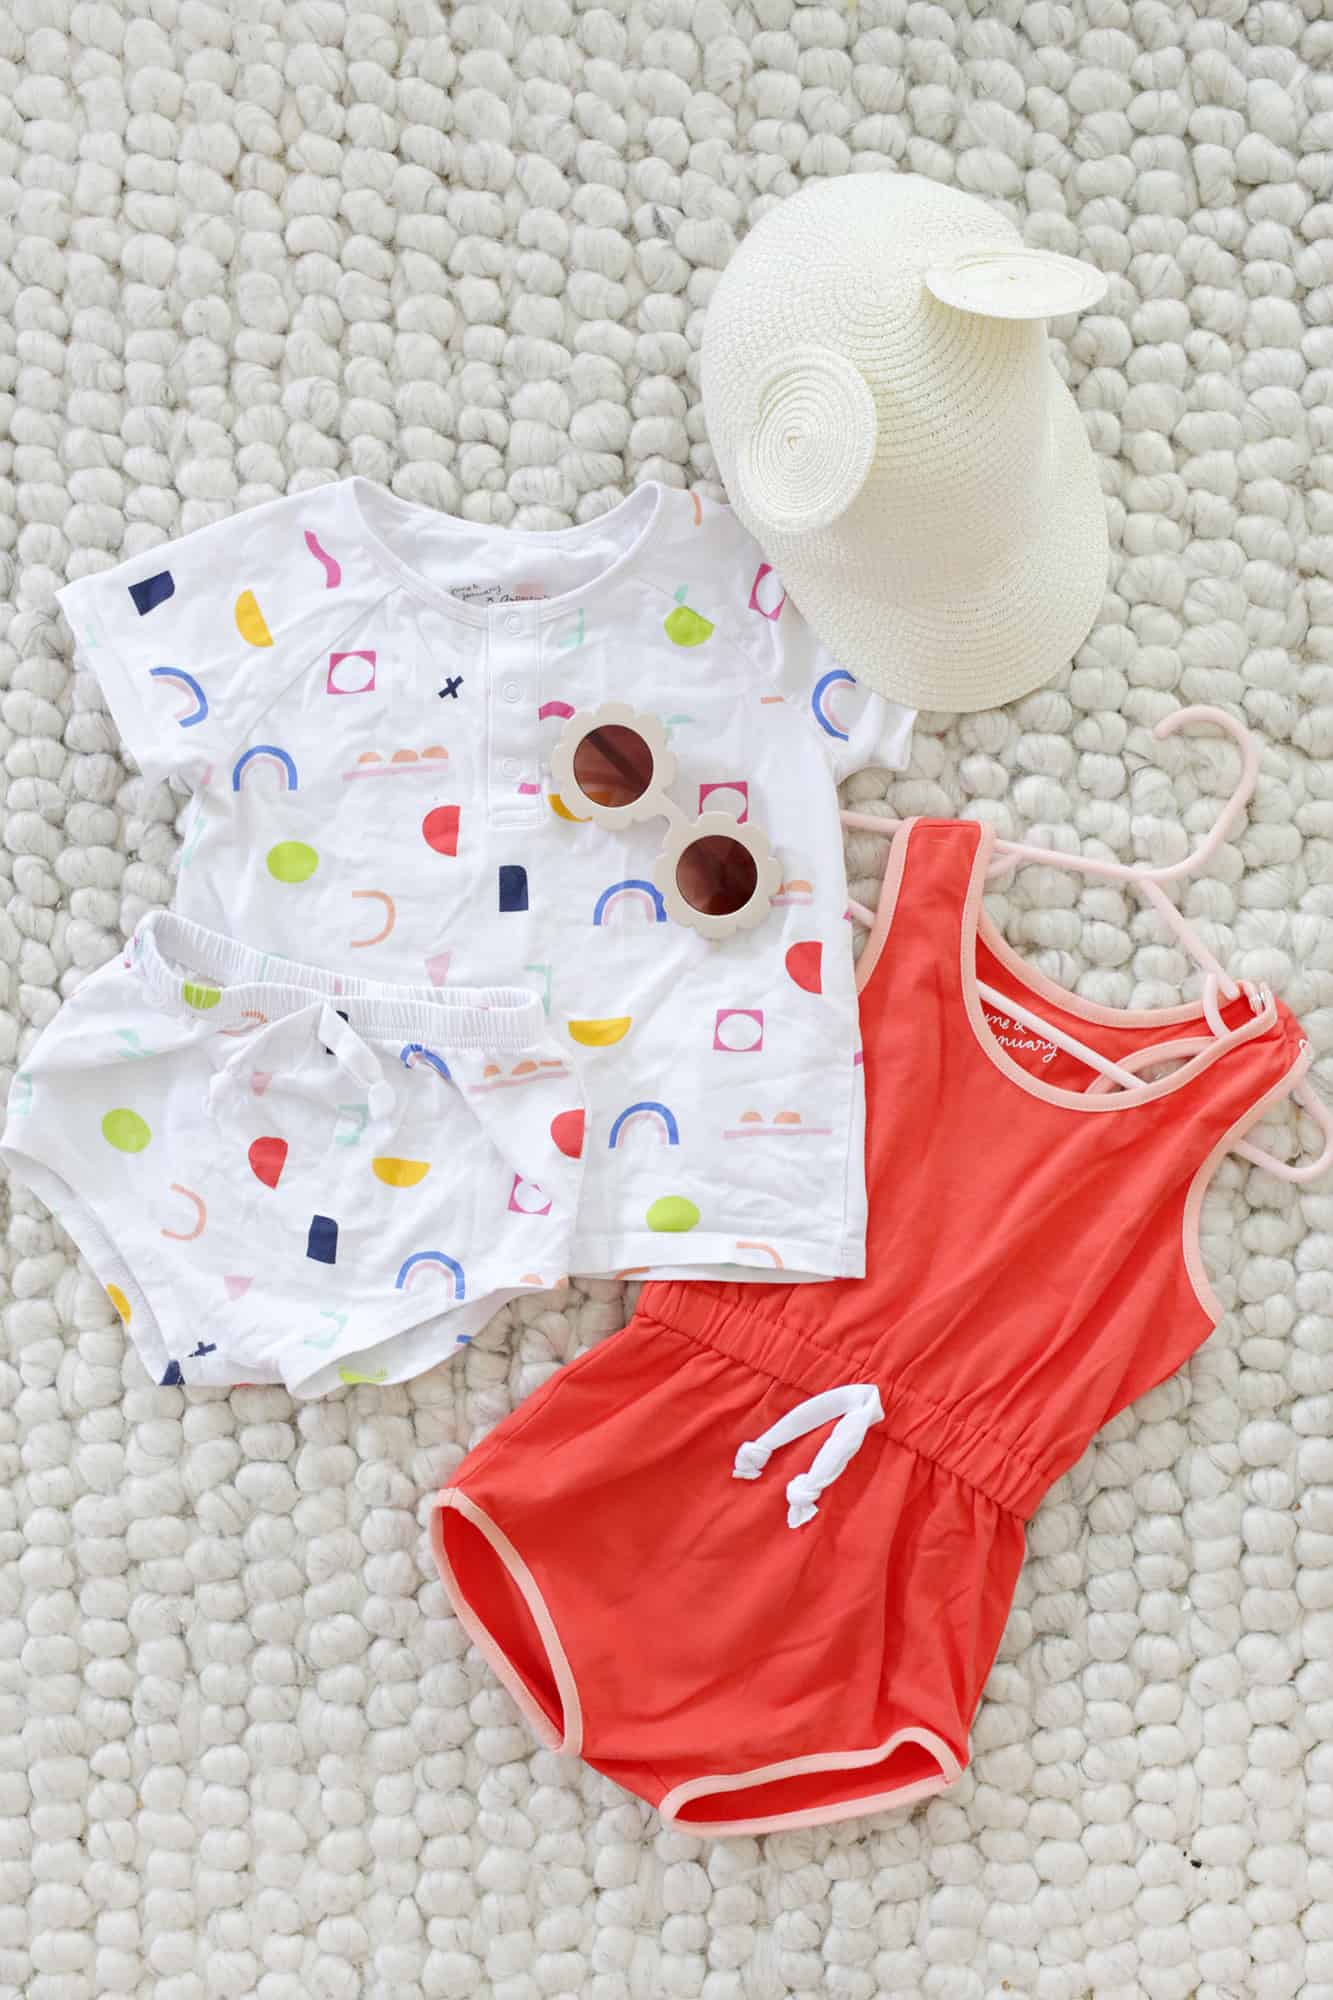 Our Favorite Summer Clothes for Kids!